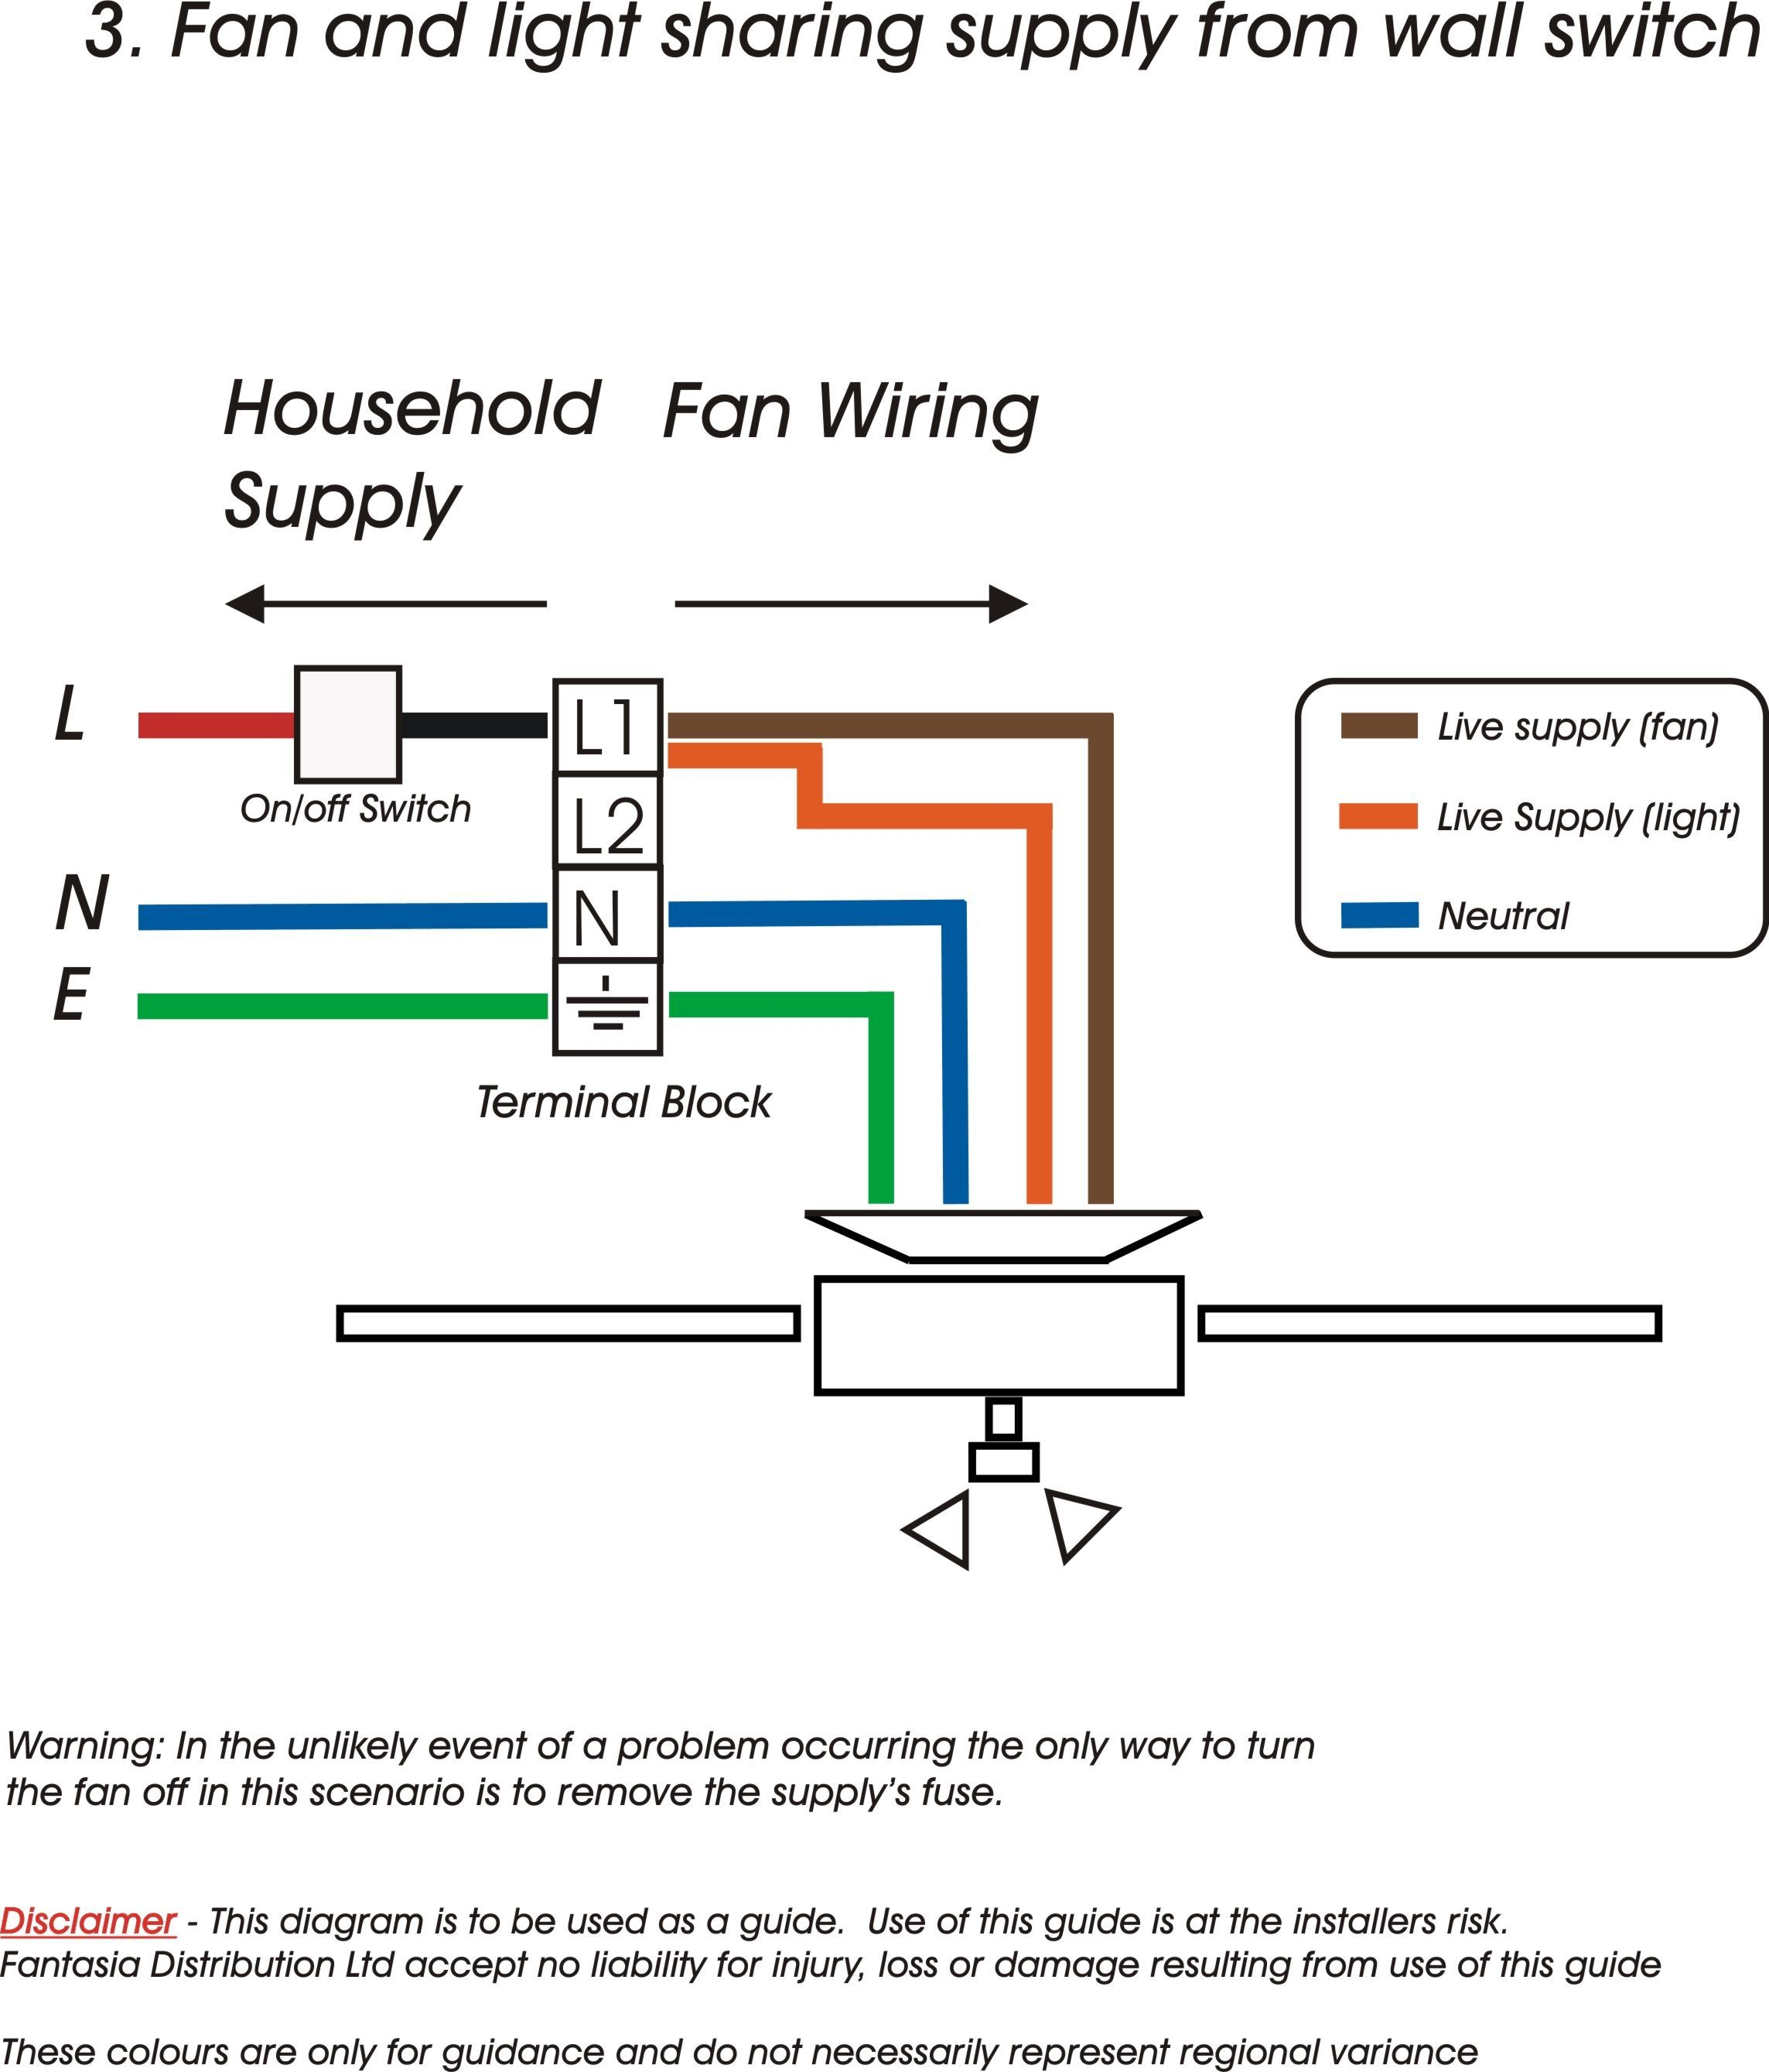 a6e72fabacaaa74231f750a53a3d3cb0 ceiling fan wall switch wiring diagram ladysro info guest spotlight wiring diagram at edmiracle.co